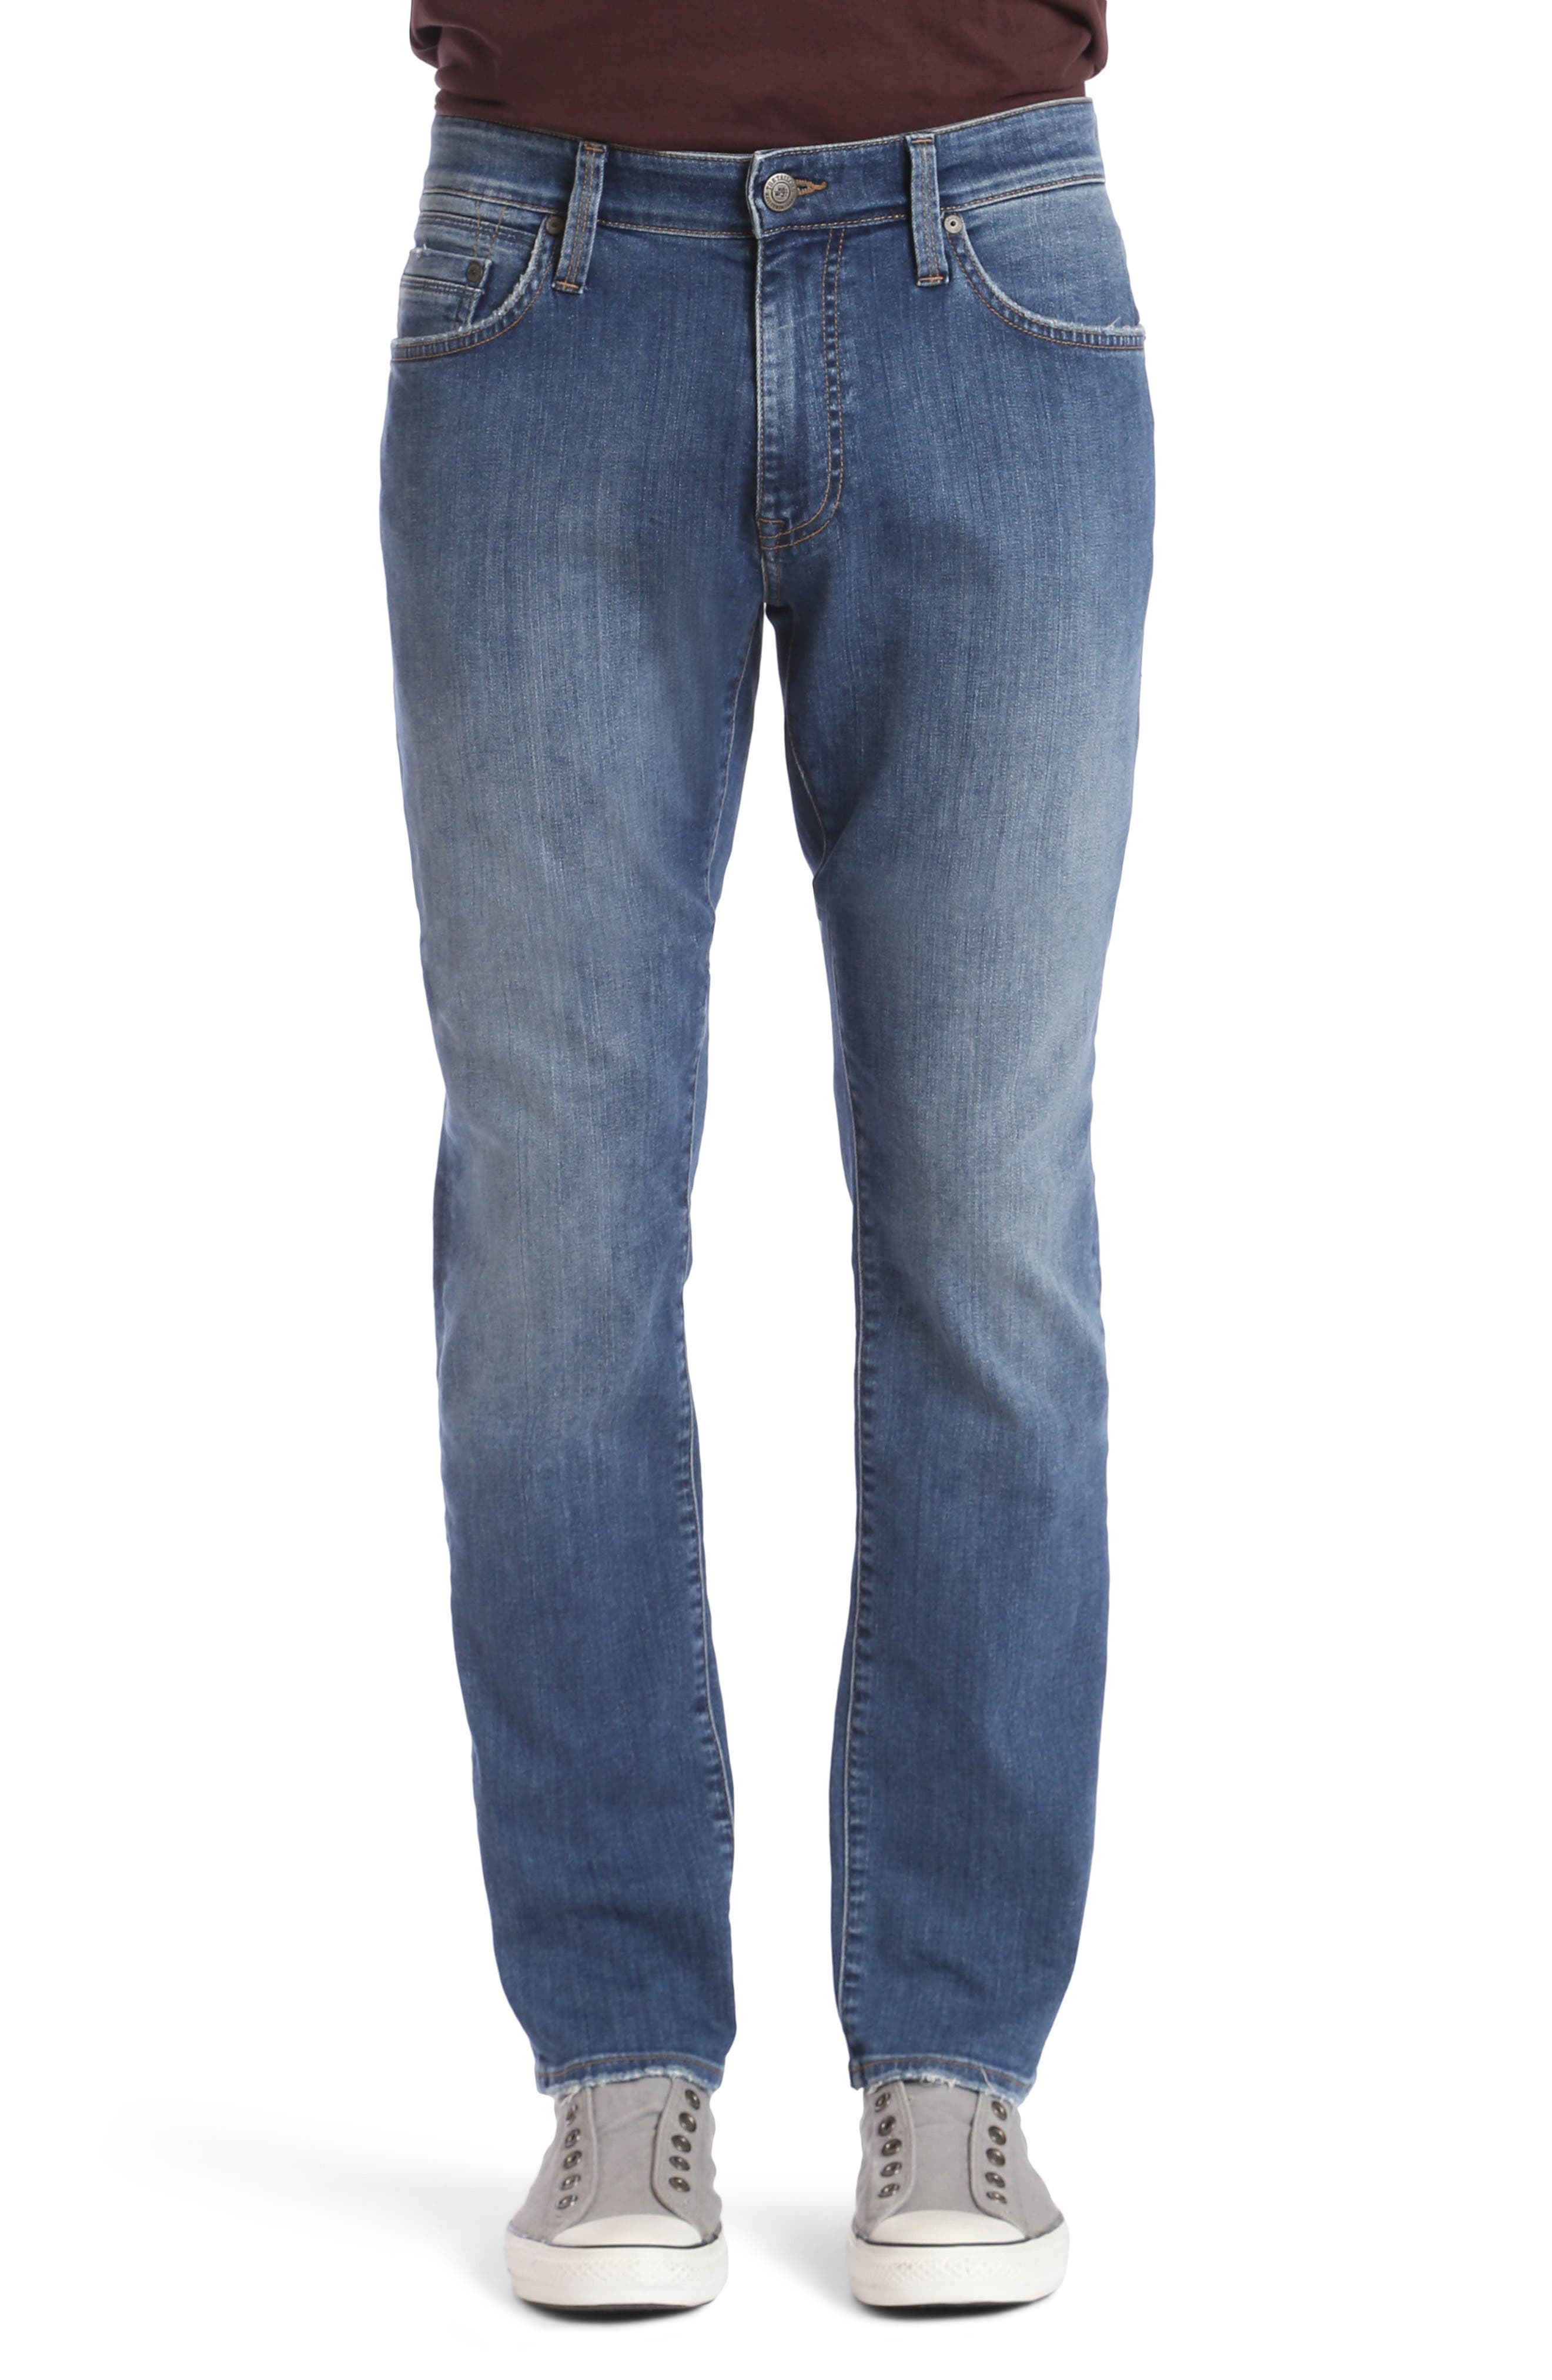 Matt Relaxed Fit Jeans,                             Main thumbnail 1, color,                             420